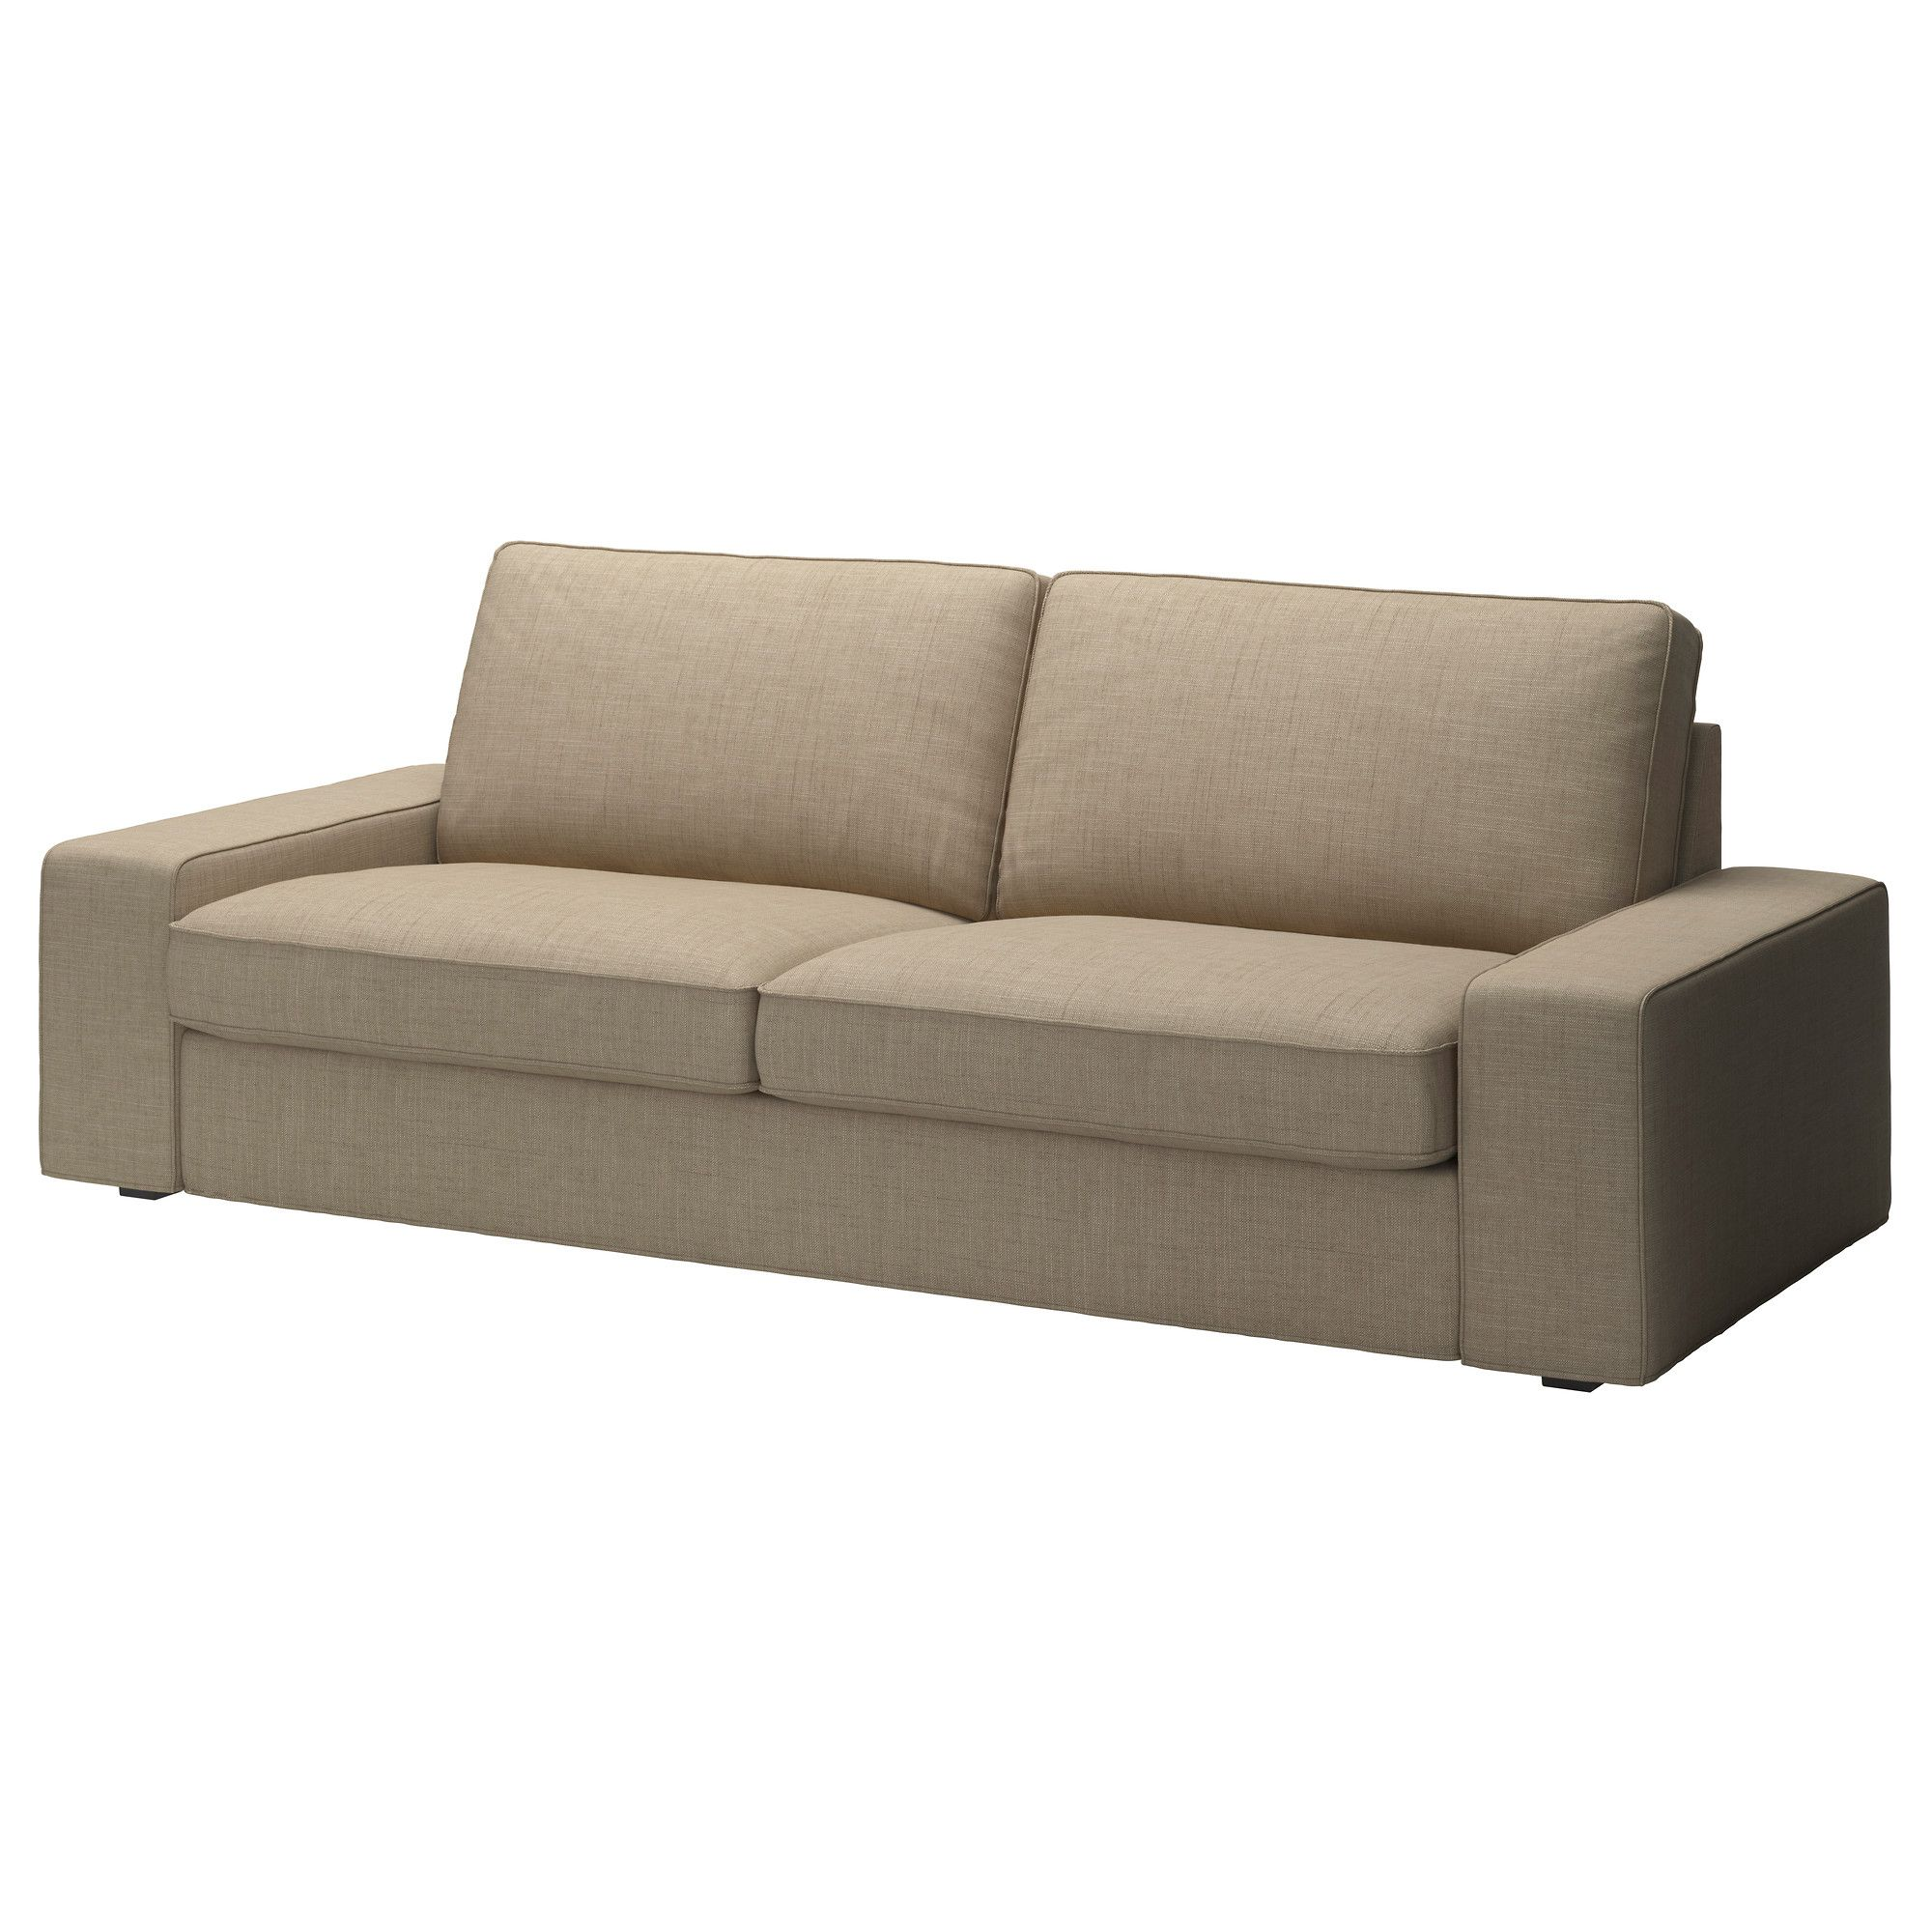 IKEA KIVIK Three Seat Sofa Isunda Beige KIVIK Is A Generous Seating Series  With A Soft, Deep Seat And Comfortable Support For Your Back.